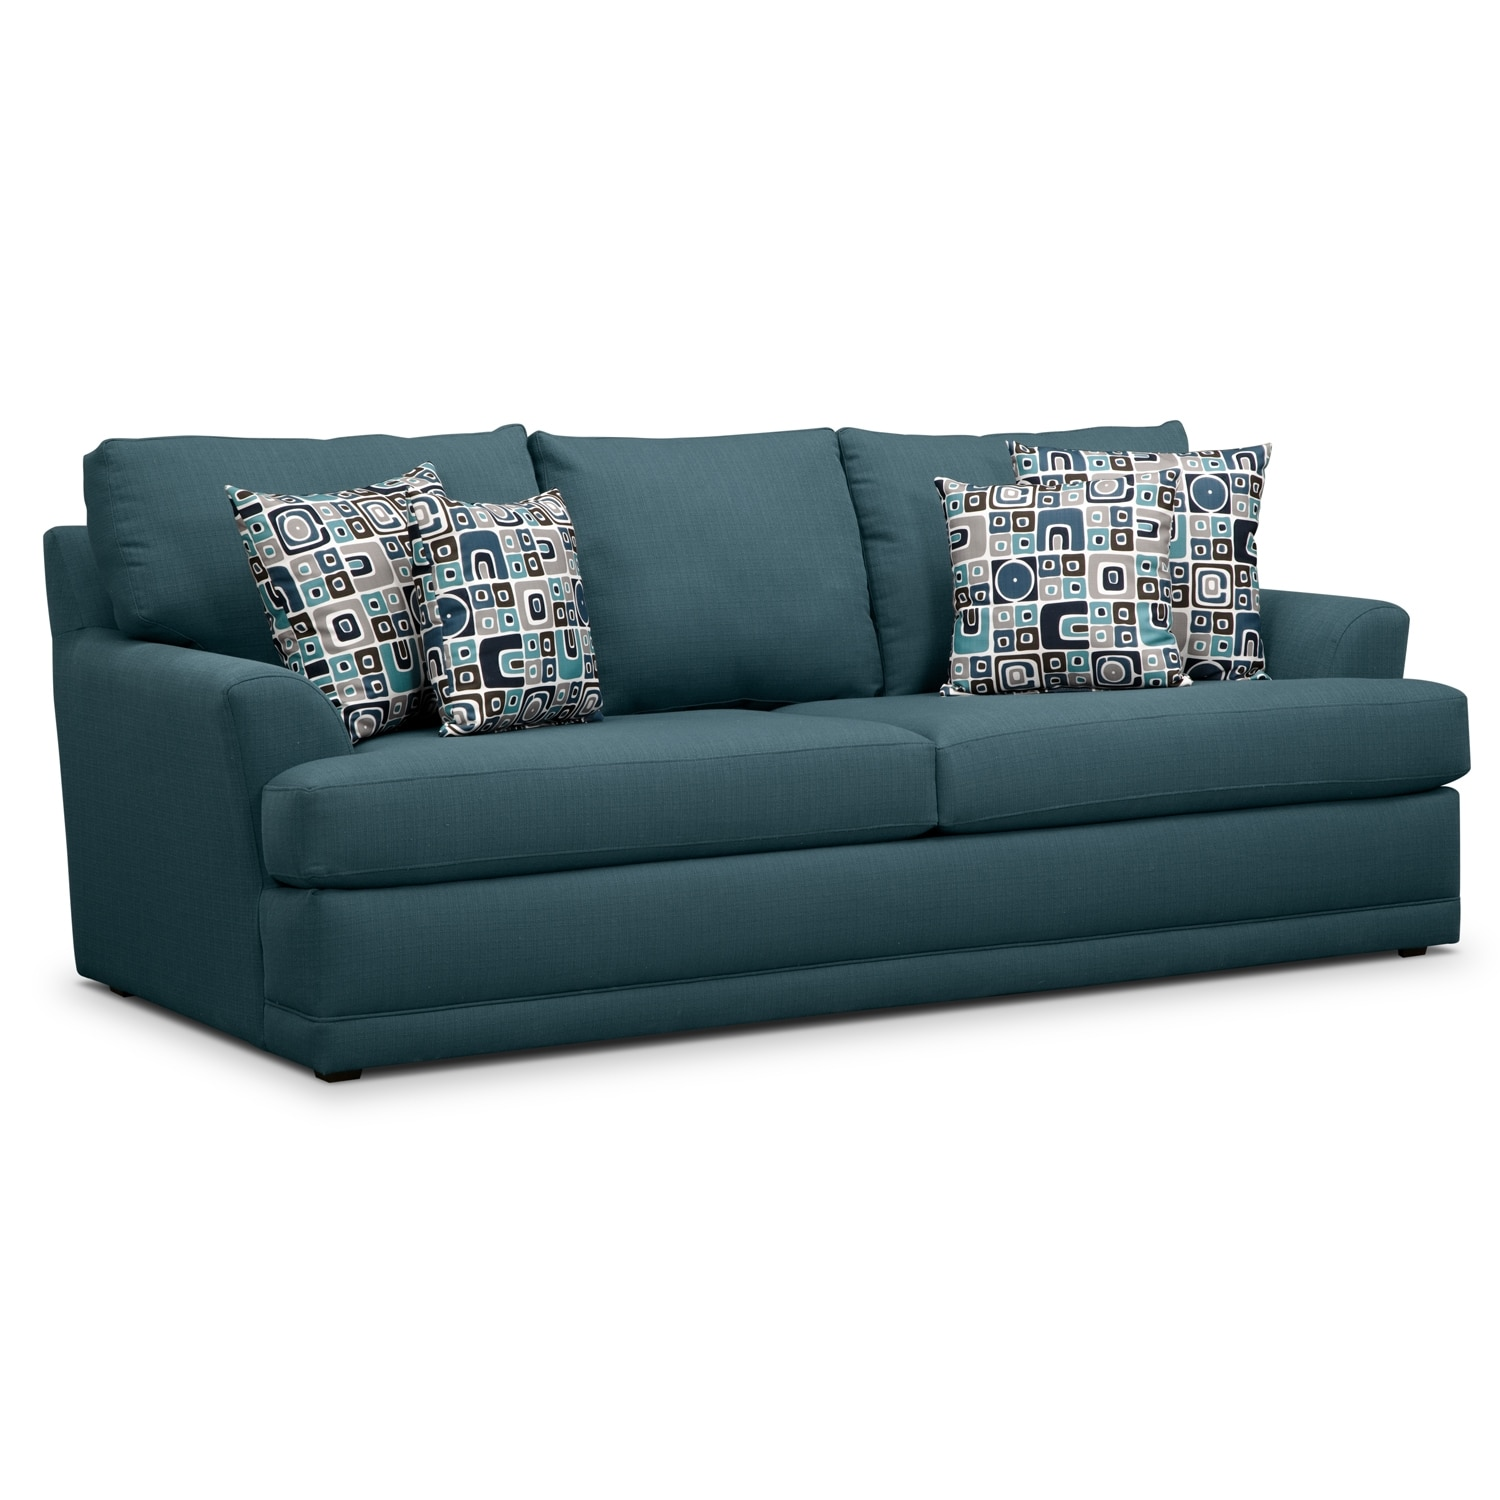 Calamar Teal Upholstery Queen Memory Foam Sleeper Sofa